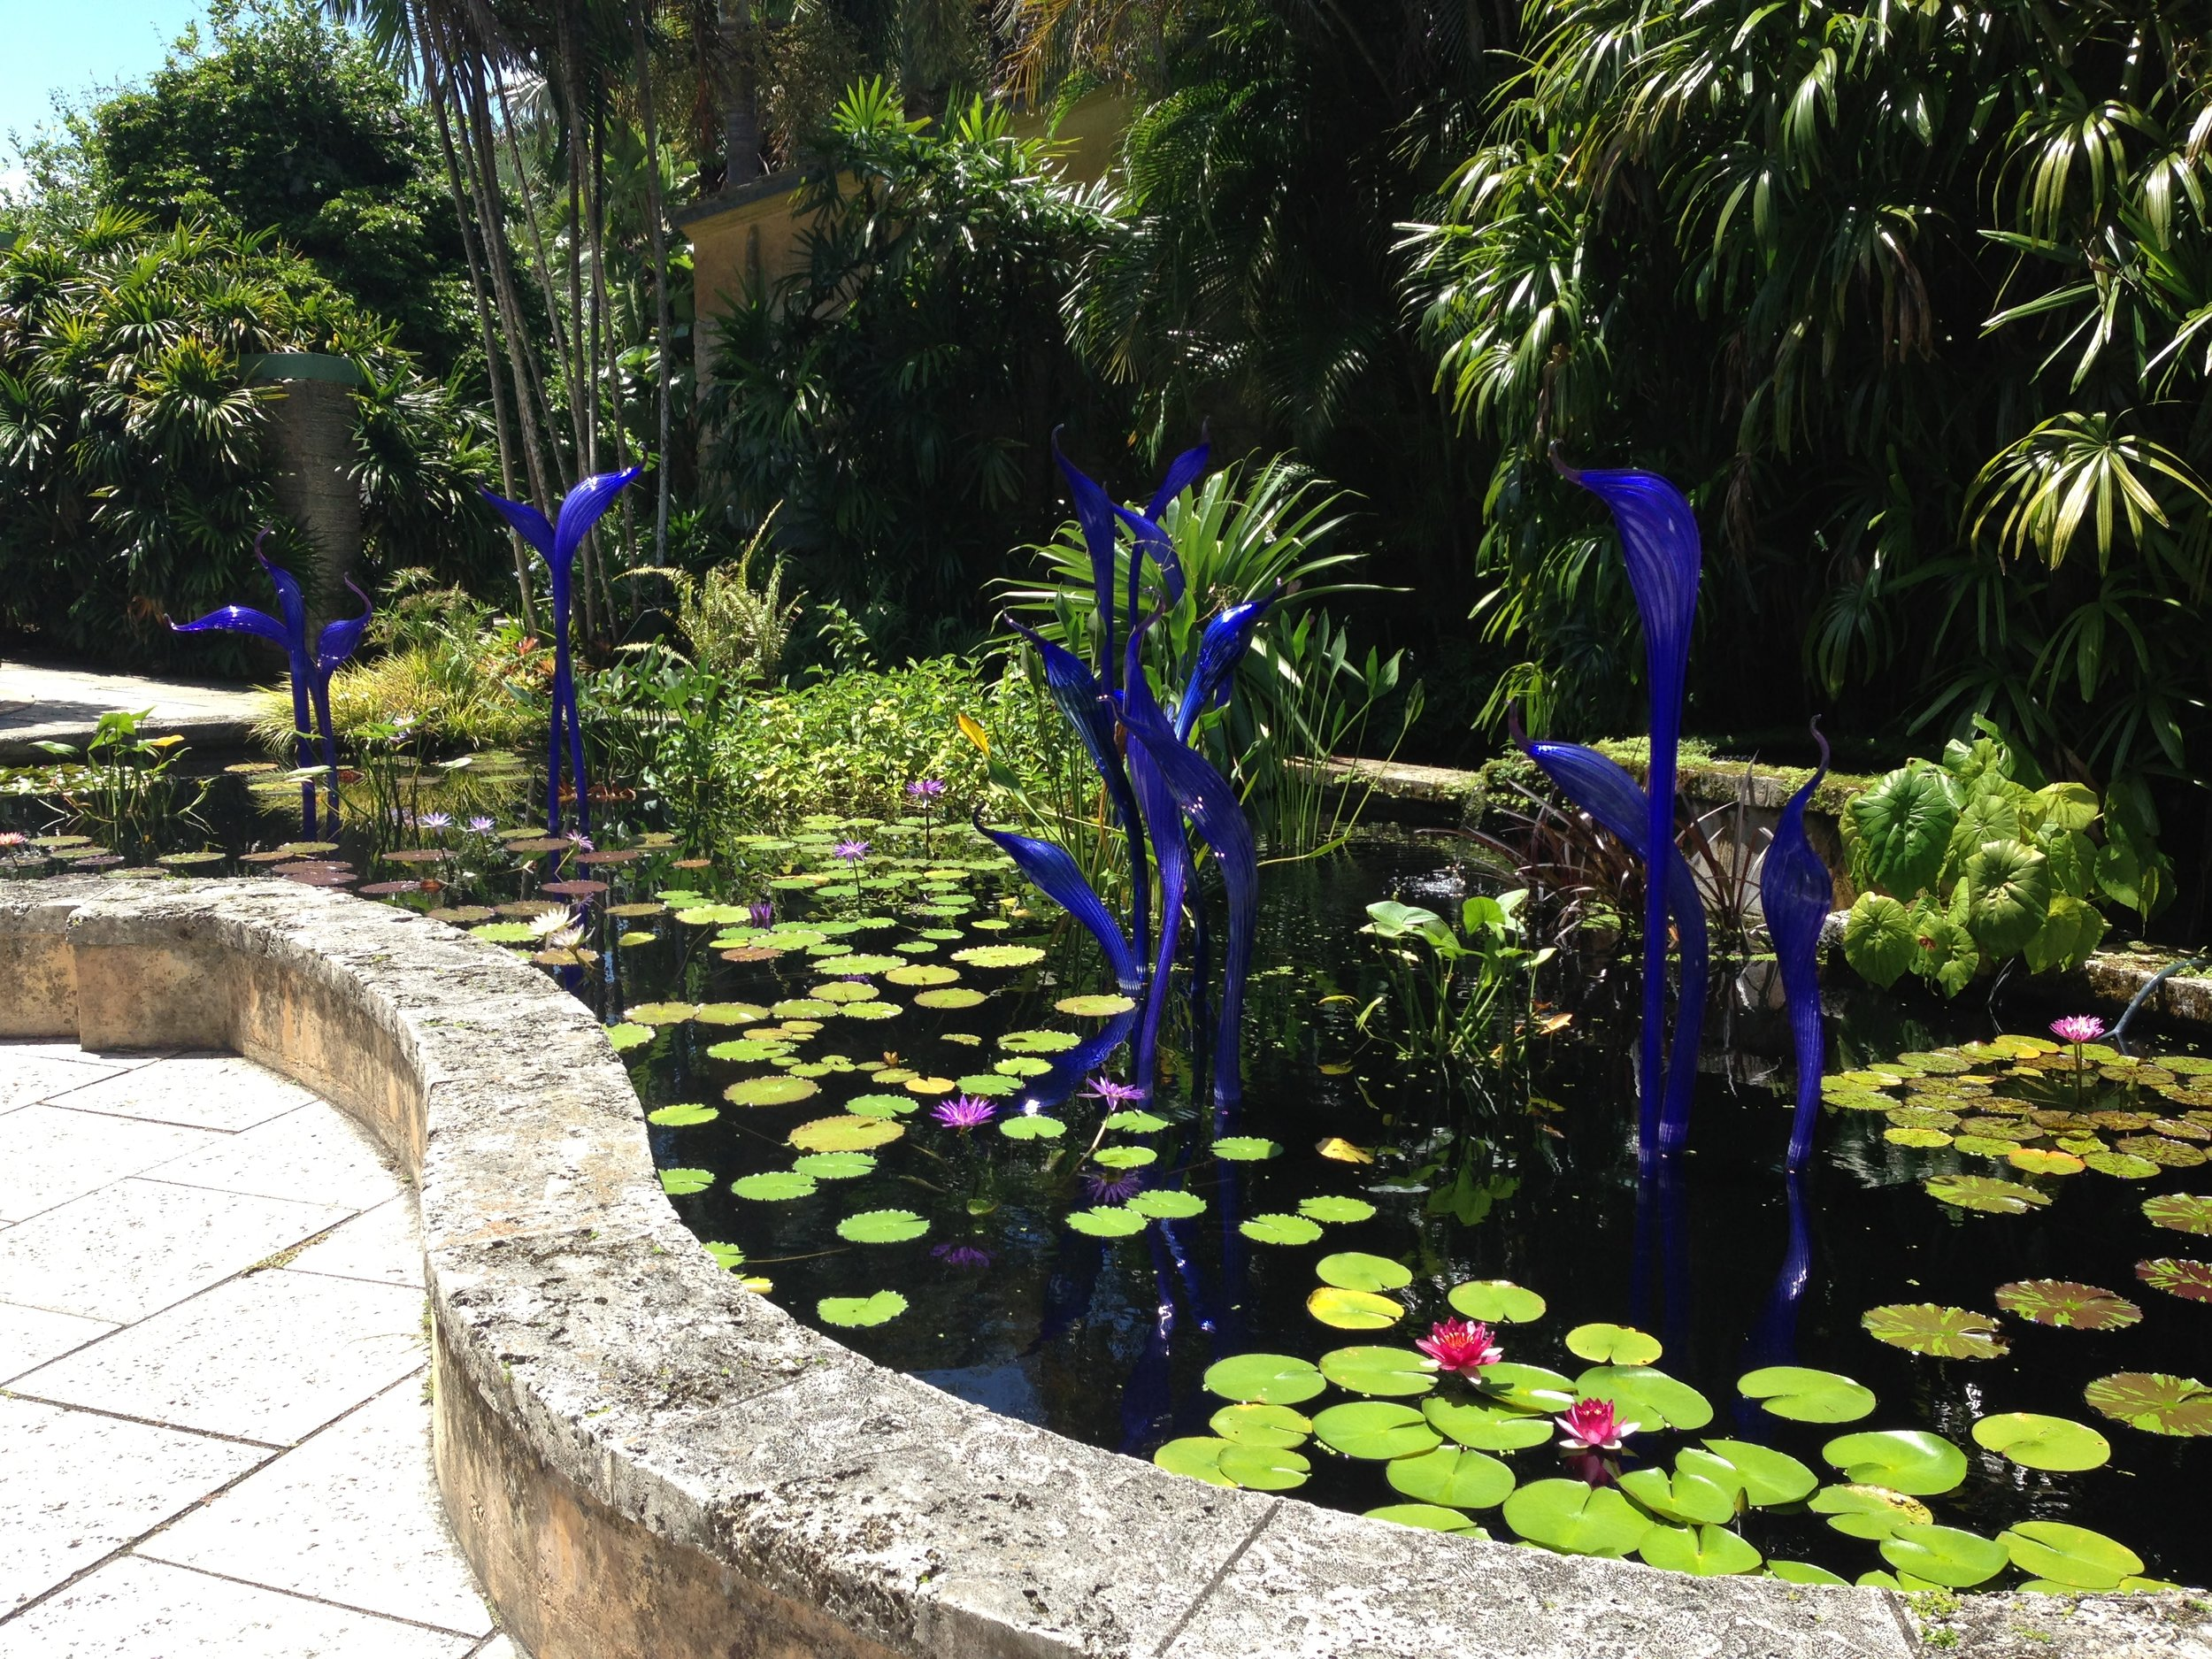 Chihuly glass at the entrance of Fairchild Tropical BG